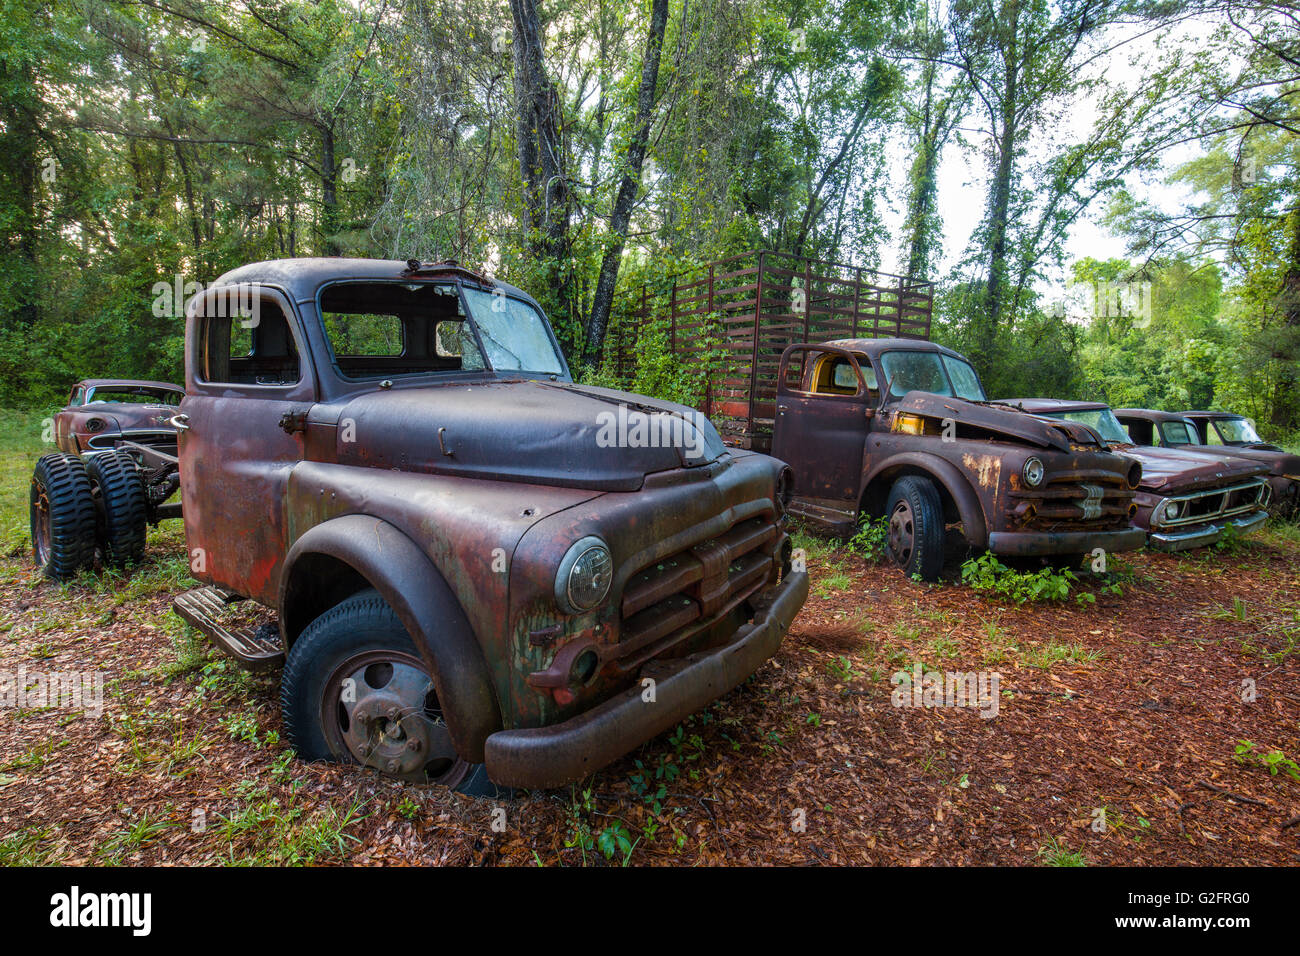 old rusted abandoned cars and trucks in crawfordville florida stock photo royalty free image. Black Bedroom Furniture Sets. Home Design Ideas